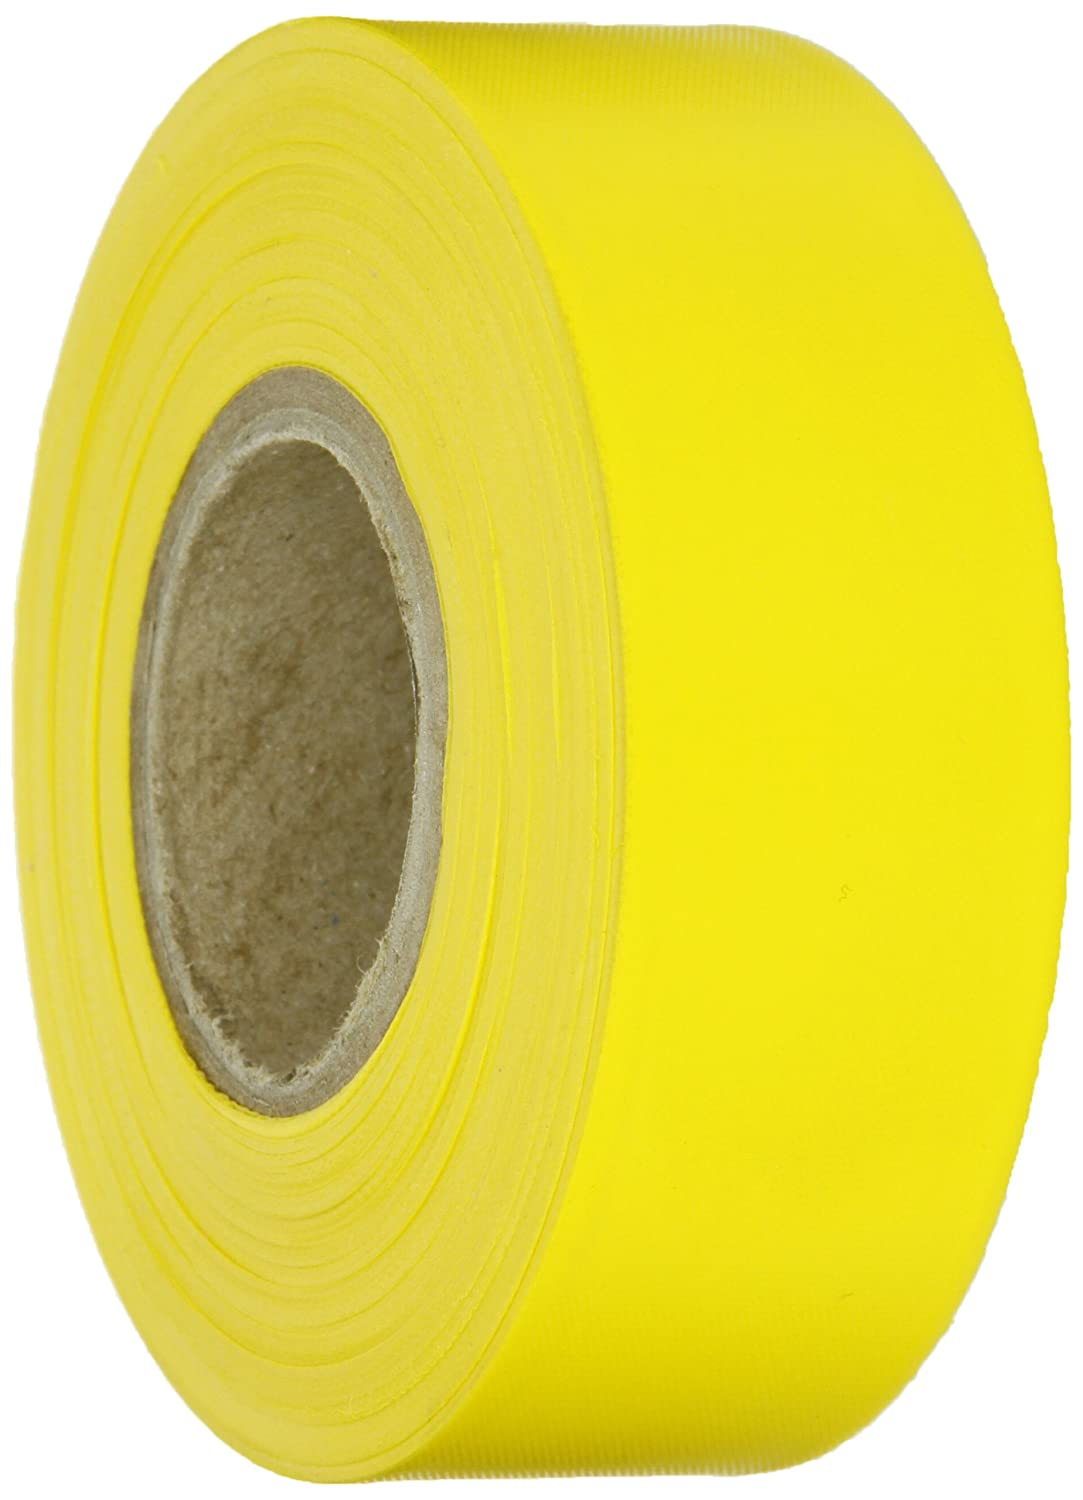 """Brady Yellow Flagging Tape for Boundaries and Hazardous Areas - Non-Adhesive Tape, 1.188"""" Width, 300' Length (Pack of 1) - 58347"""